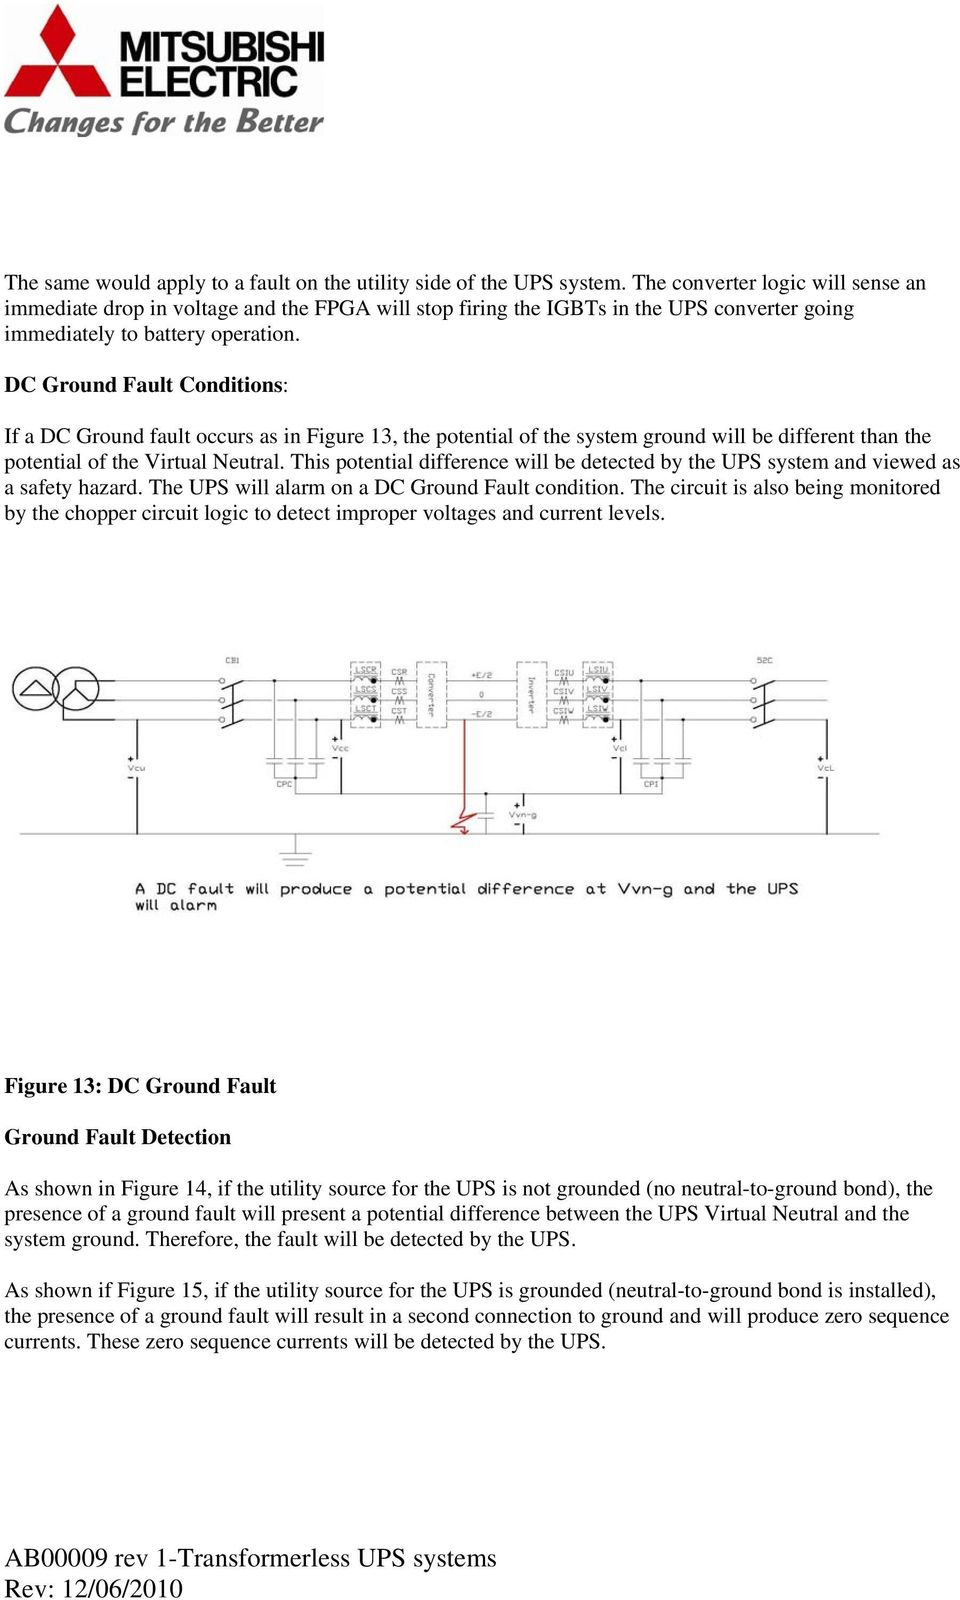 DC Ground Fault Conditions: If a DC Ground fault occurs as in Figure 13, the potential of the system ground will be different than the potential of the Virtual Neutral.